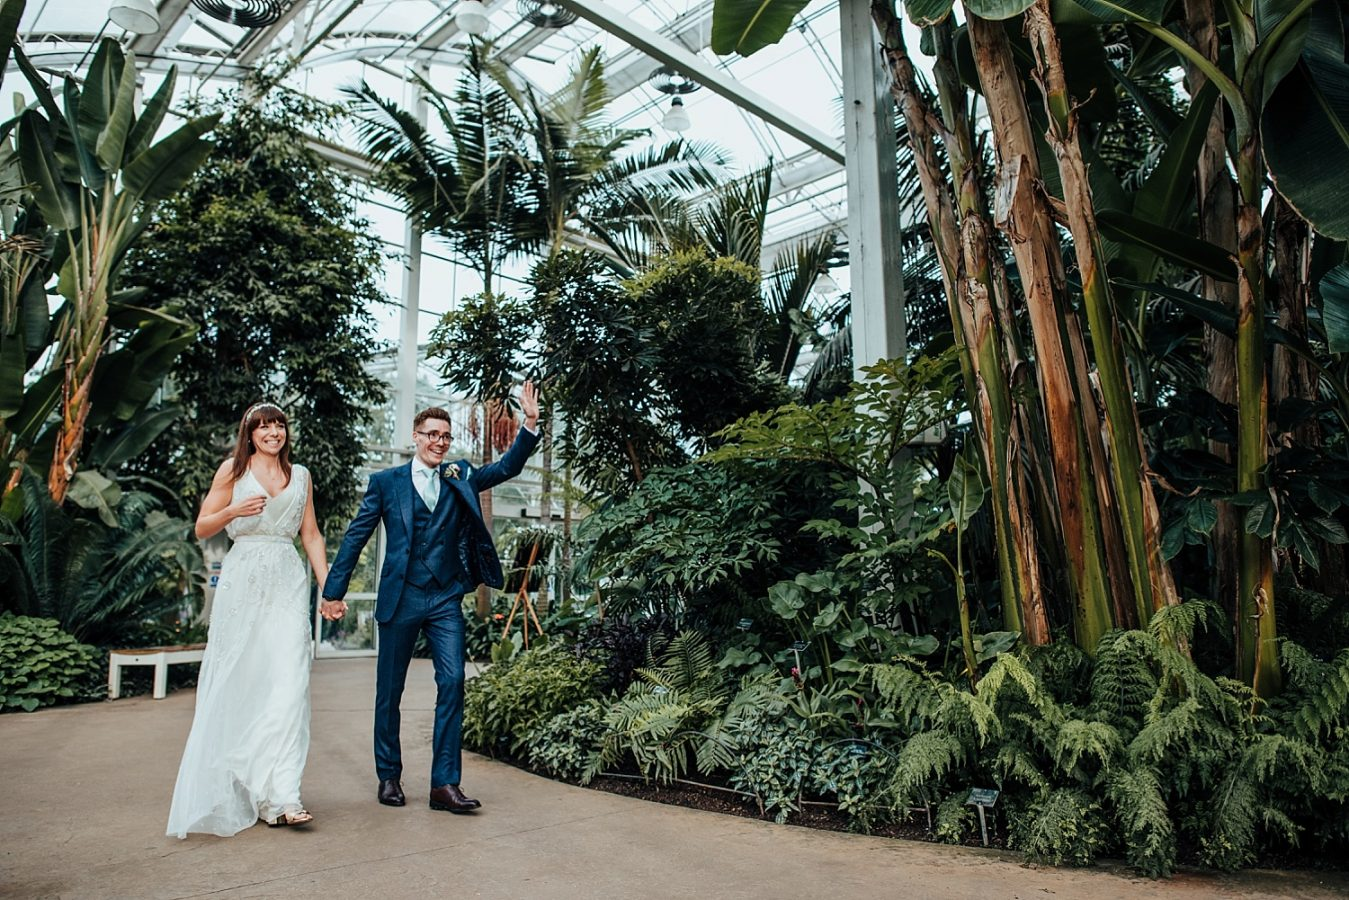 bride and groom walking into RHS WISLEY Glasshouse on wedding day